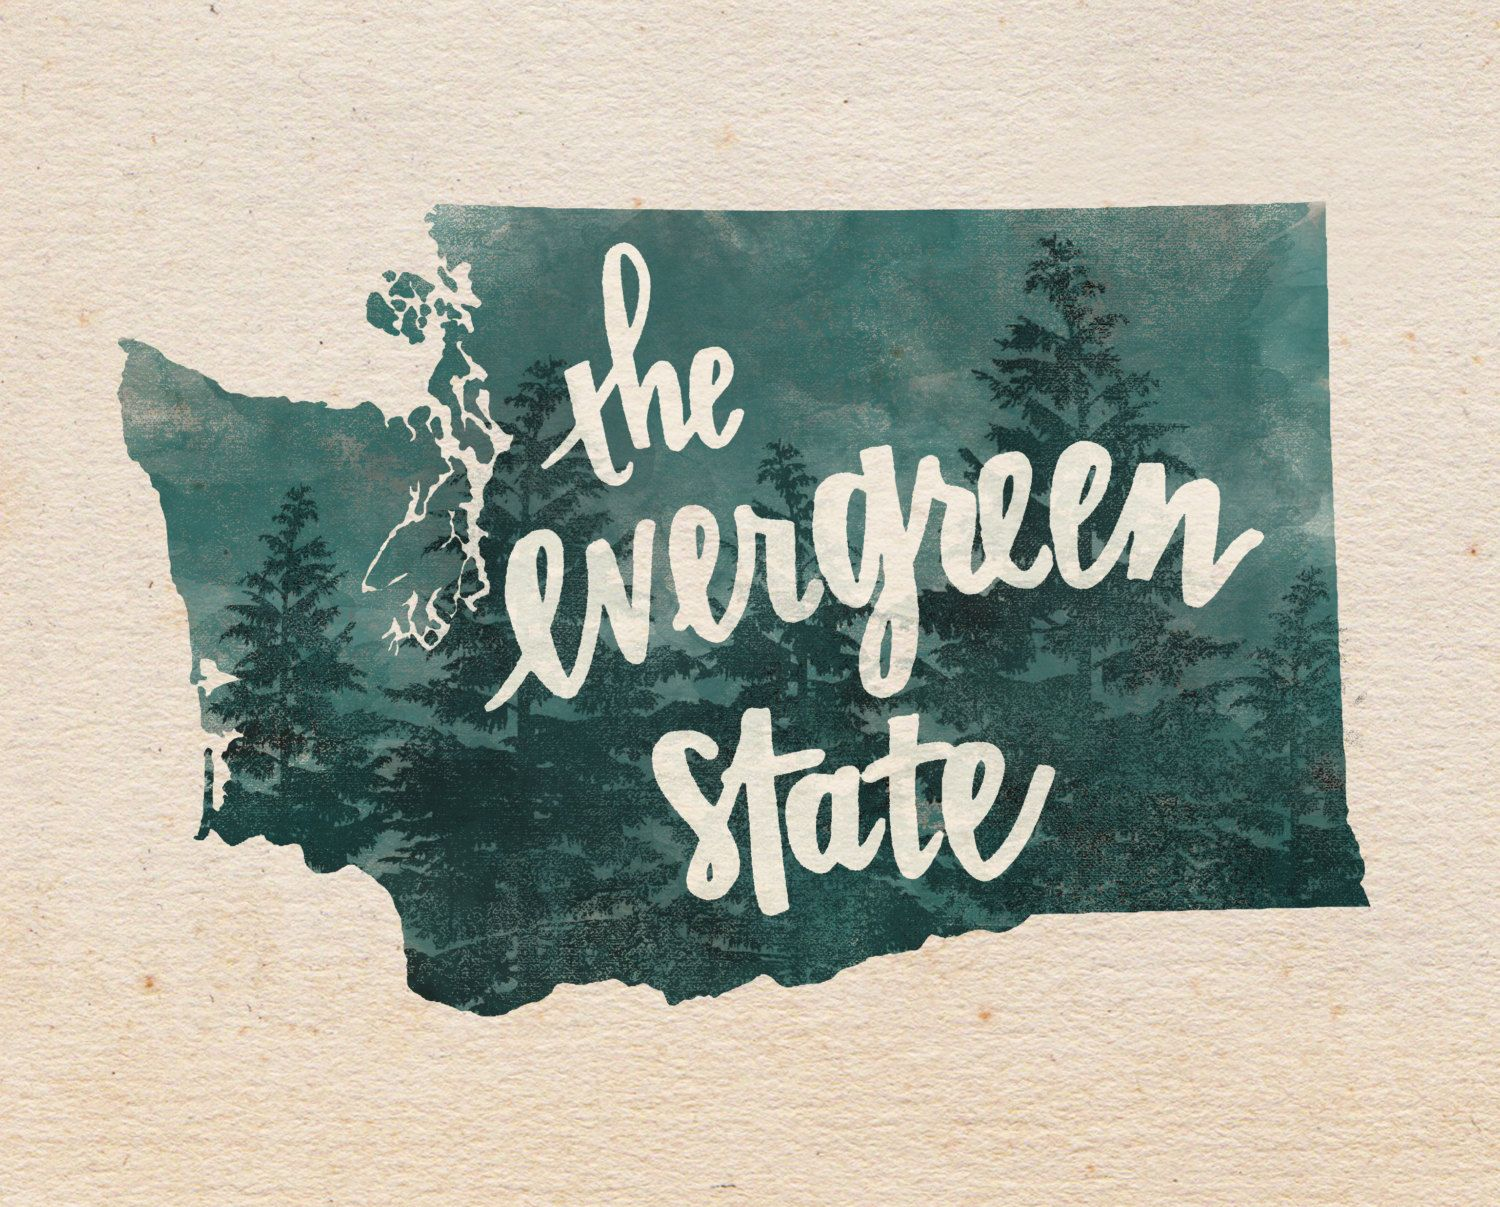 The Evergreen State >> Washington Evergreen State Hand Lettering Digital Print